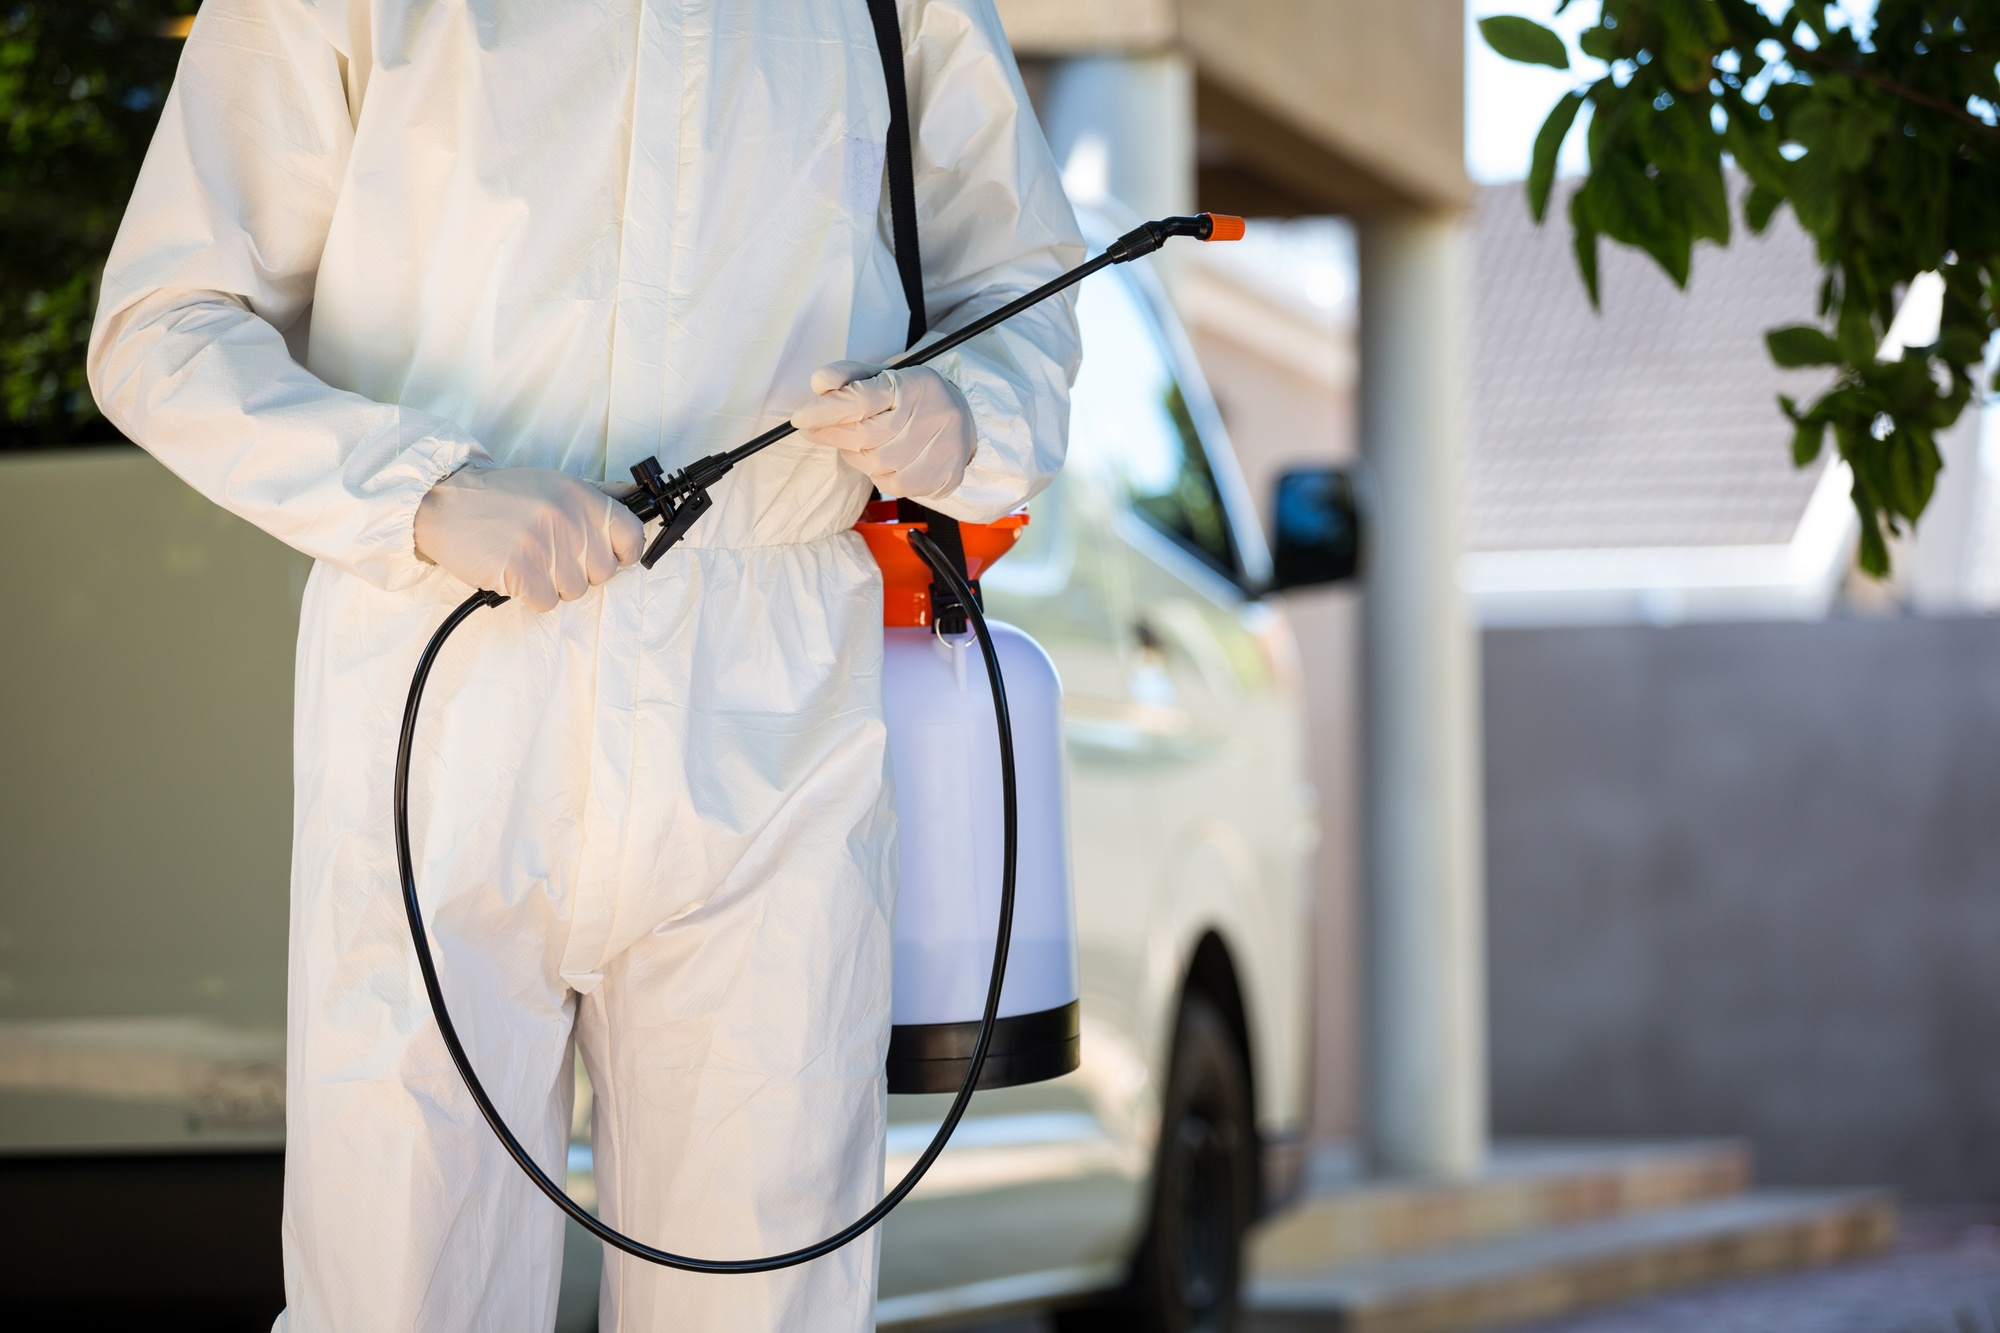 This Is How to Hire a Professional Exterminator